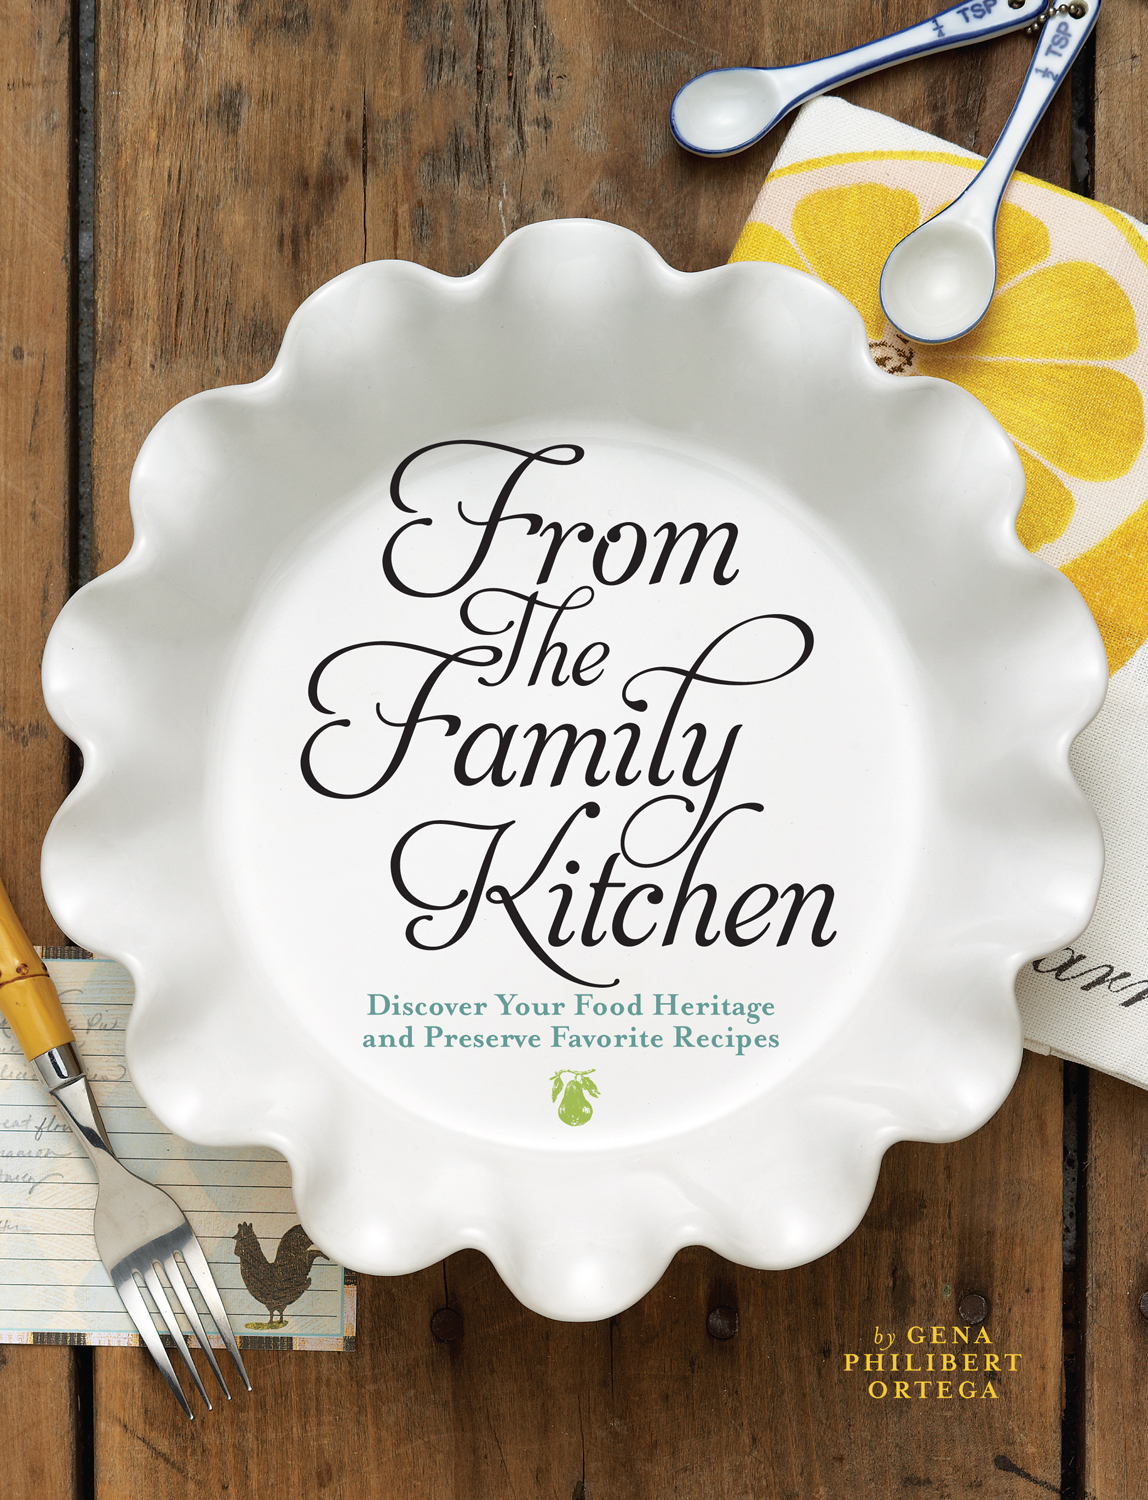 - Celebrate Your Family Recipes and HeritageFrom Great-grandma's apple pie to Mom's secret-recipe stuffing, food is an important ingredient in every family's history. This three-part keepsake recipe journal will help you celebrate your family recipes and record the precious memories those recipes hold for you--whether they're hilarious anecdotes about a disastrous dish or tender reflections about time spent cooking with a loved one.The foods we eat tell us so much about who we are, where we live and the era we live in. The same is true for the foods our ancestors ate. This book will show you how to uncover historical recipes and food traditions, offering insight into your ancestors' everyday lives and clues to your genealogy. Inside you'll find:Methods for gathering family recipesInterview questions to help loved ones record their food memoriesPlaces to search for historical recipesAn explanation of how immigrants influenced the American dietA look at how technology changed the way people eatA glossary of historical cooking termsModern equivalents to historical units of measureActual recipes from late nineteenth- and early twentieth-century cookbooks